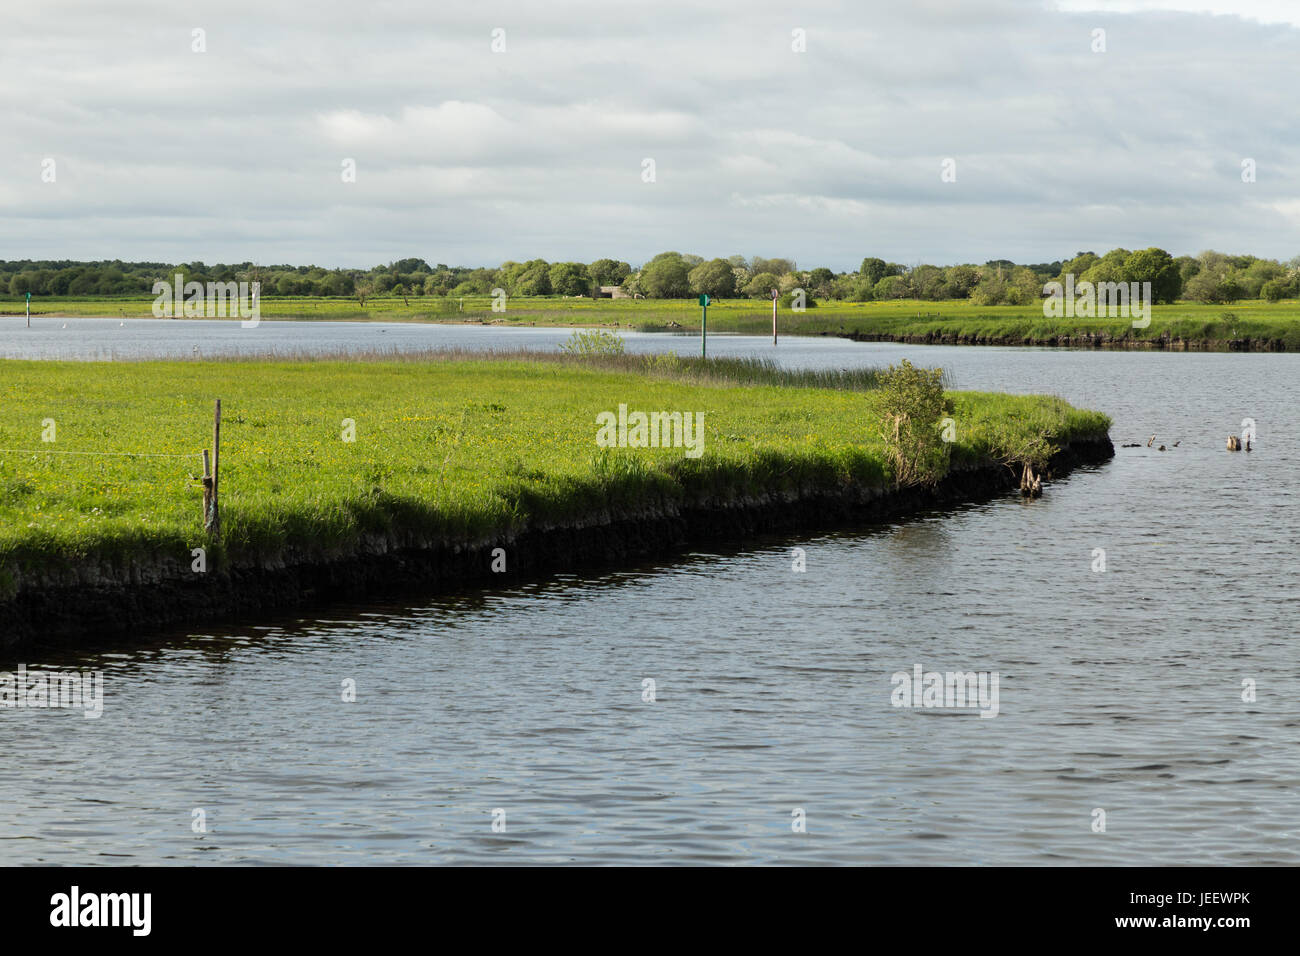 cruising on the River Shannon - Stock Image